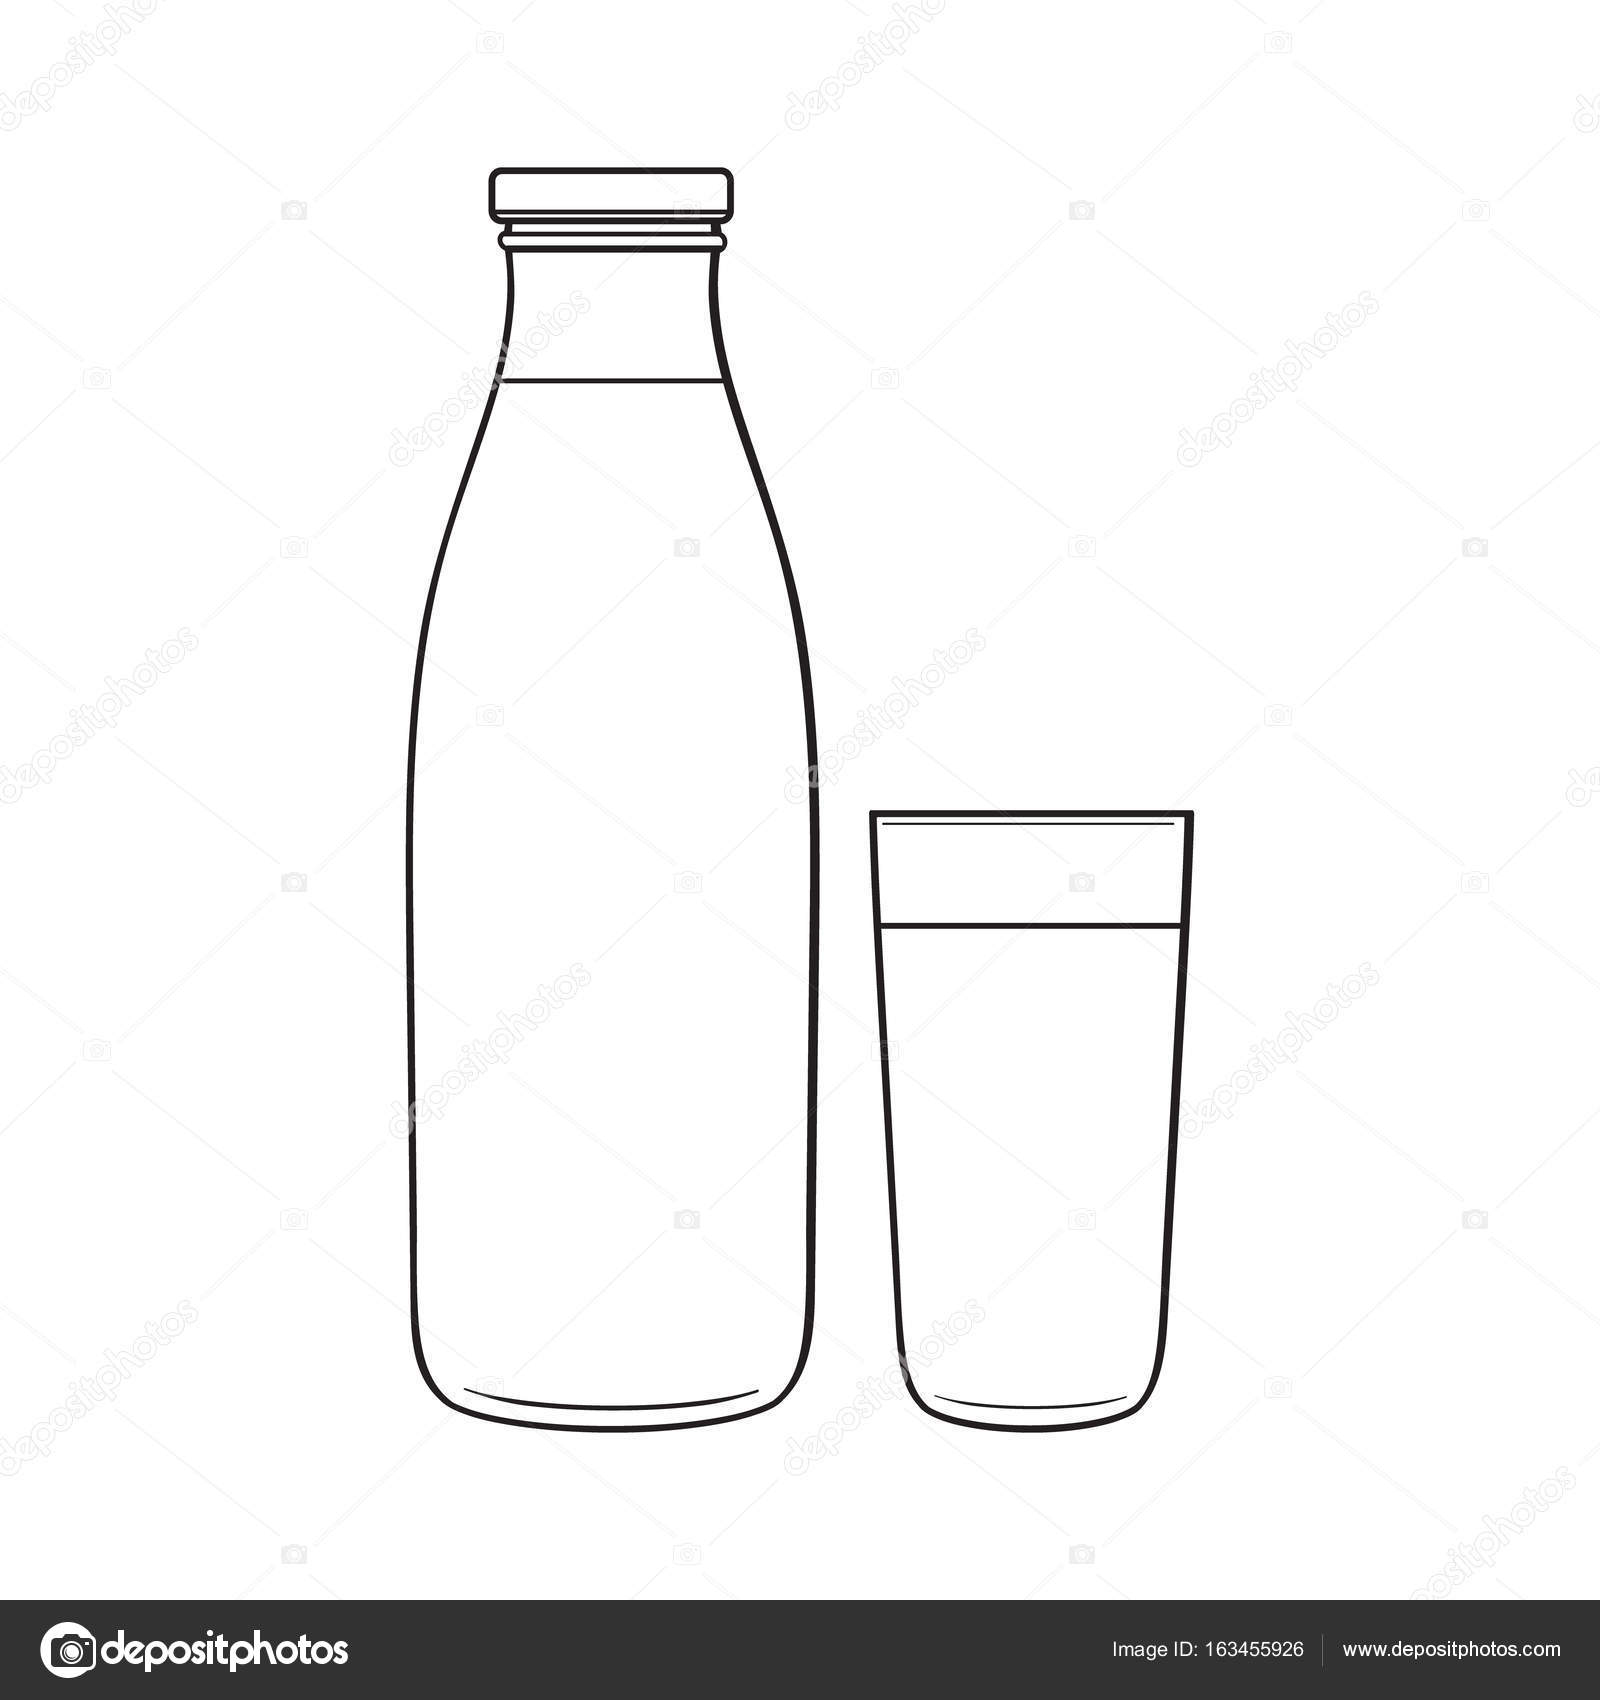 side view drawing of bottle and glass with liquid stock vector